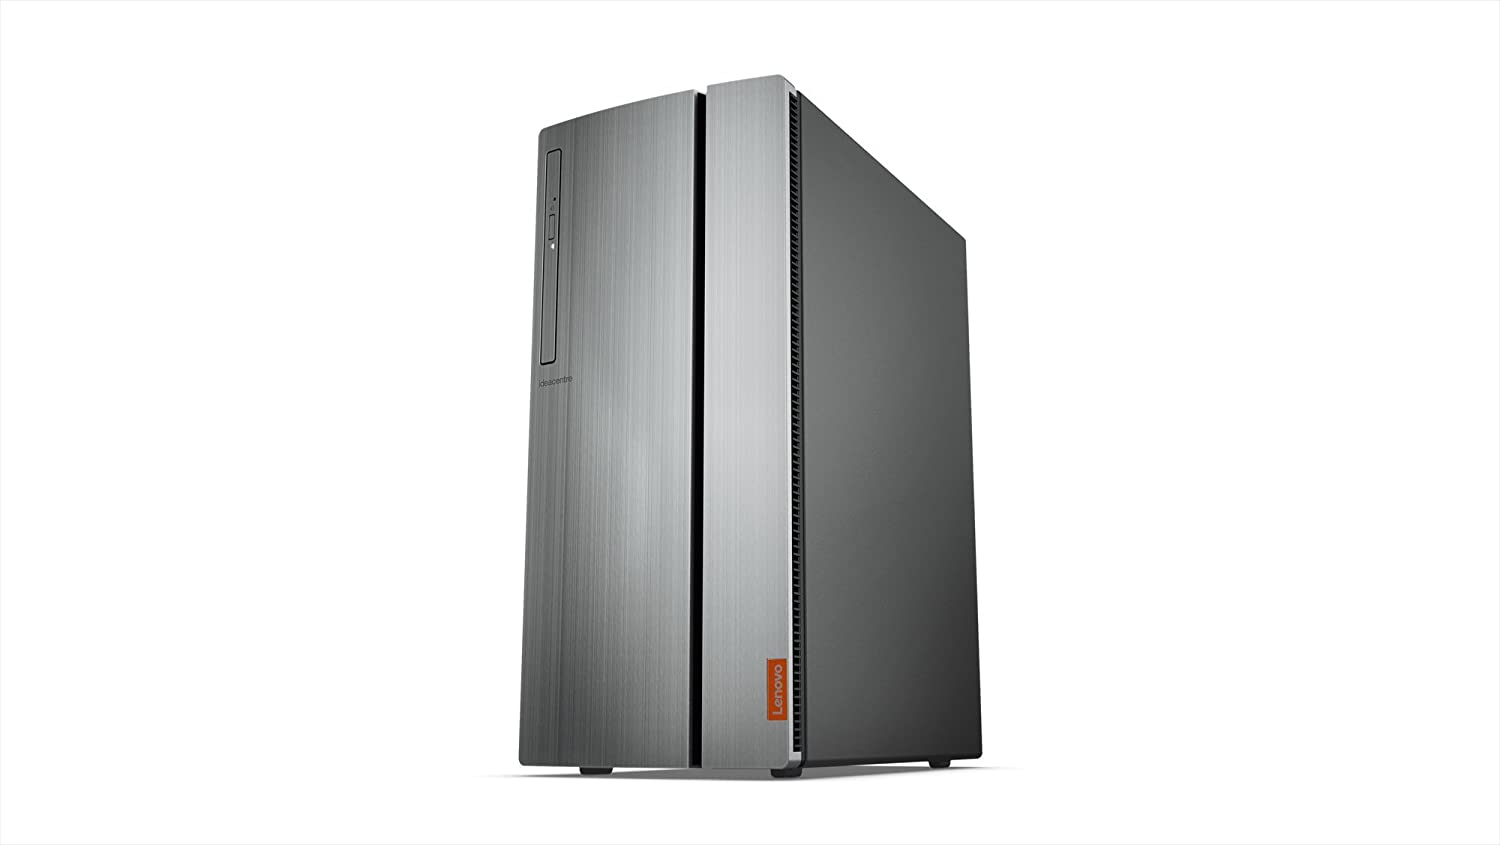 Lenovo IdeaCentre 720 Tower Desktop Computer (Intel Core i7-8700, 16 GB RAM, 2TB HDD Plus 16GB Intel Optane Memory, NVIDIA GeForce GTX 1050Ti, Windows 10), 90HT0005US (Renewed)